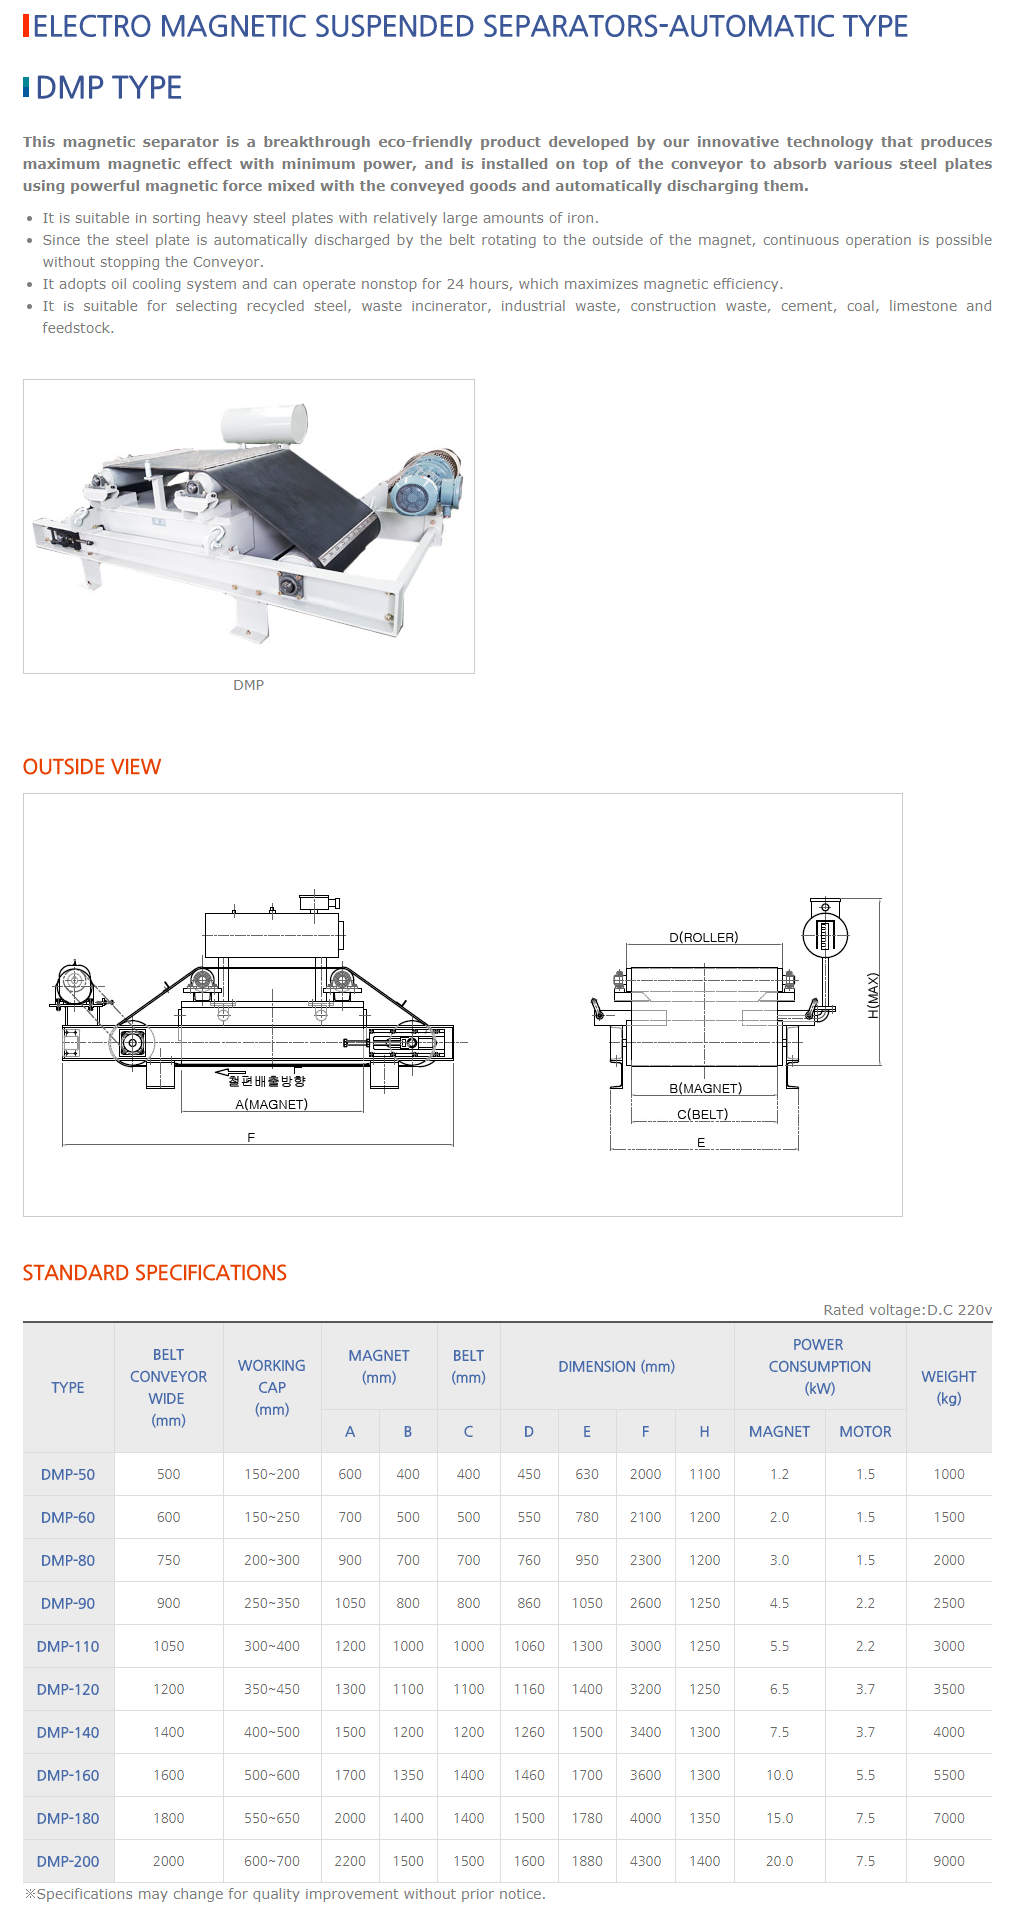 DAESUNG MARGNET Electro Magnetic Suspended Separators (Automatic Type) DMP Type